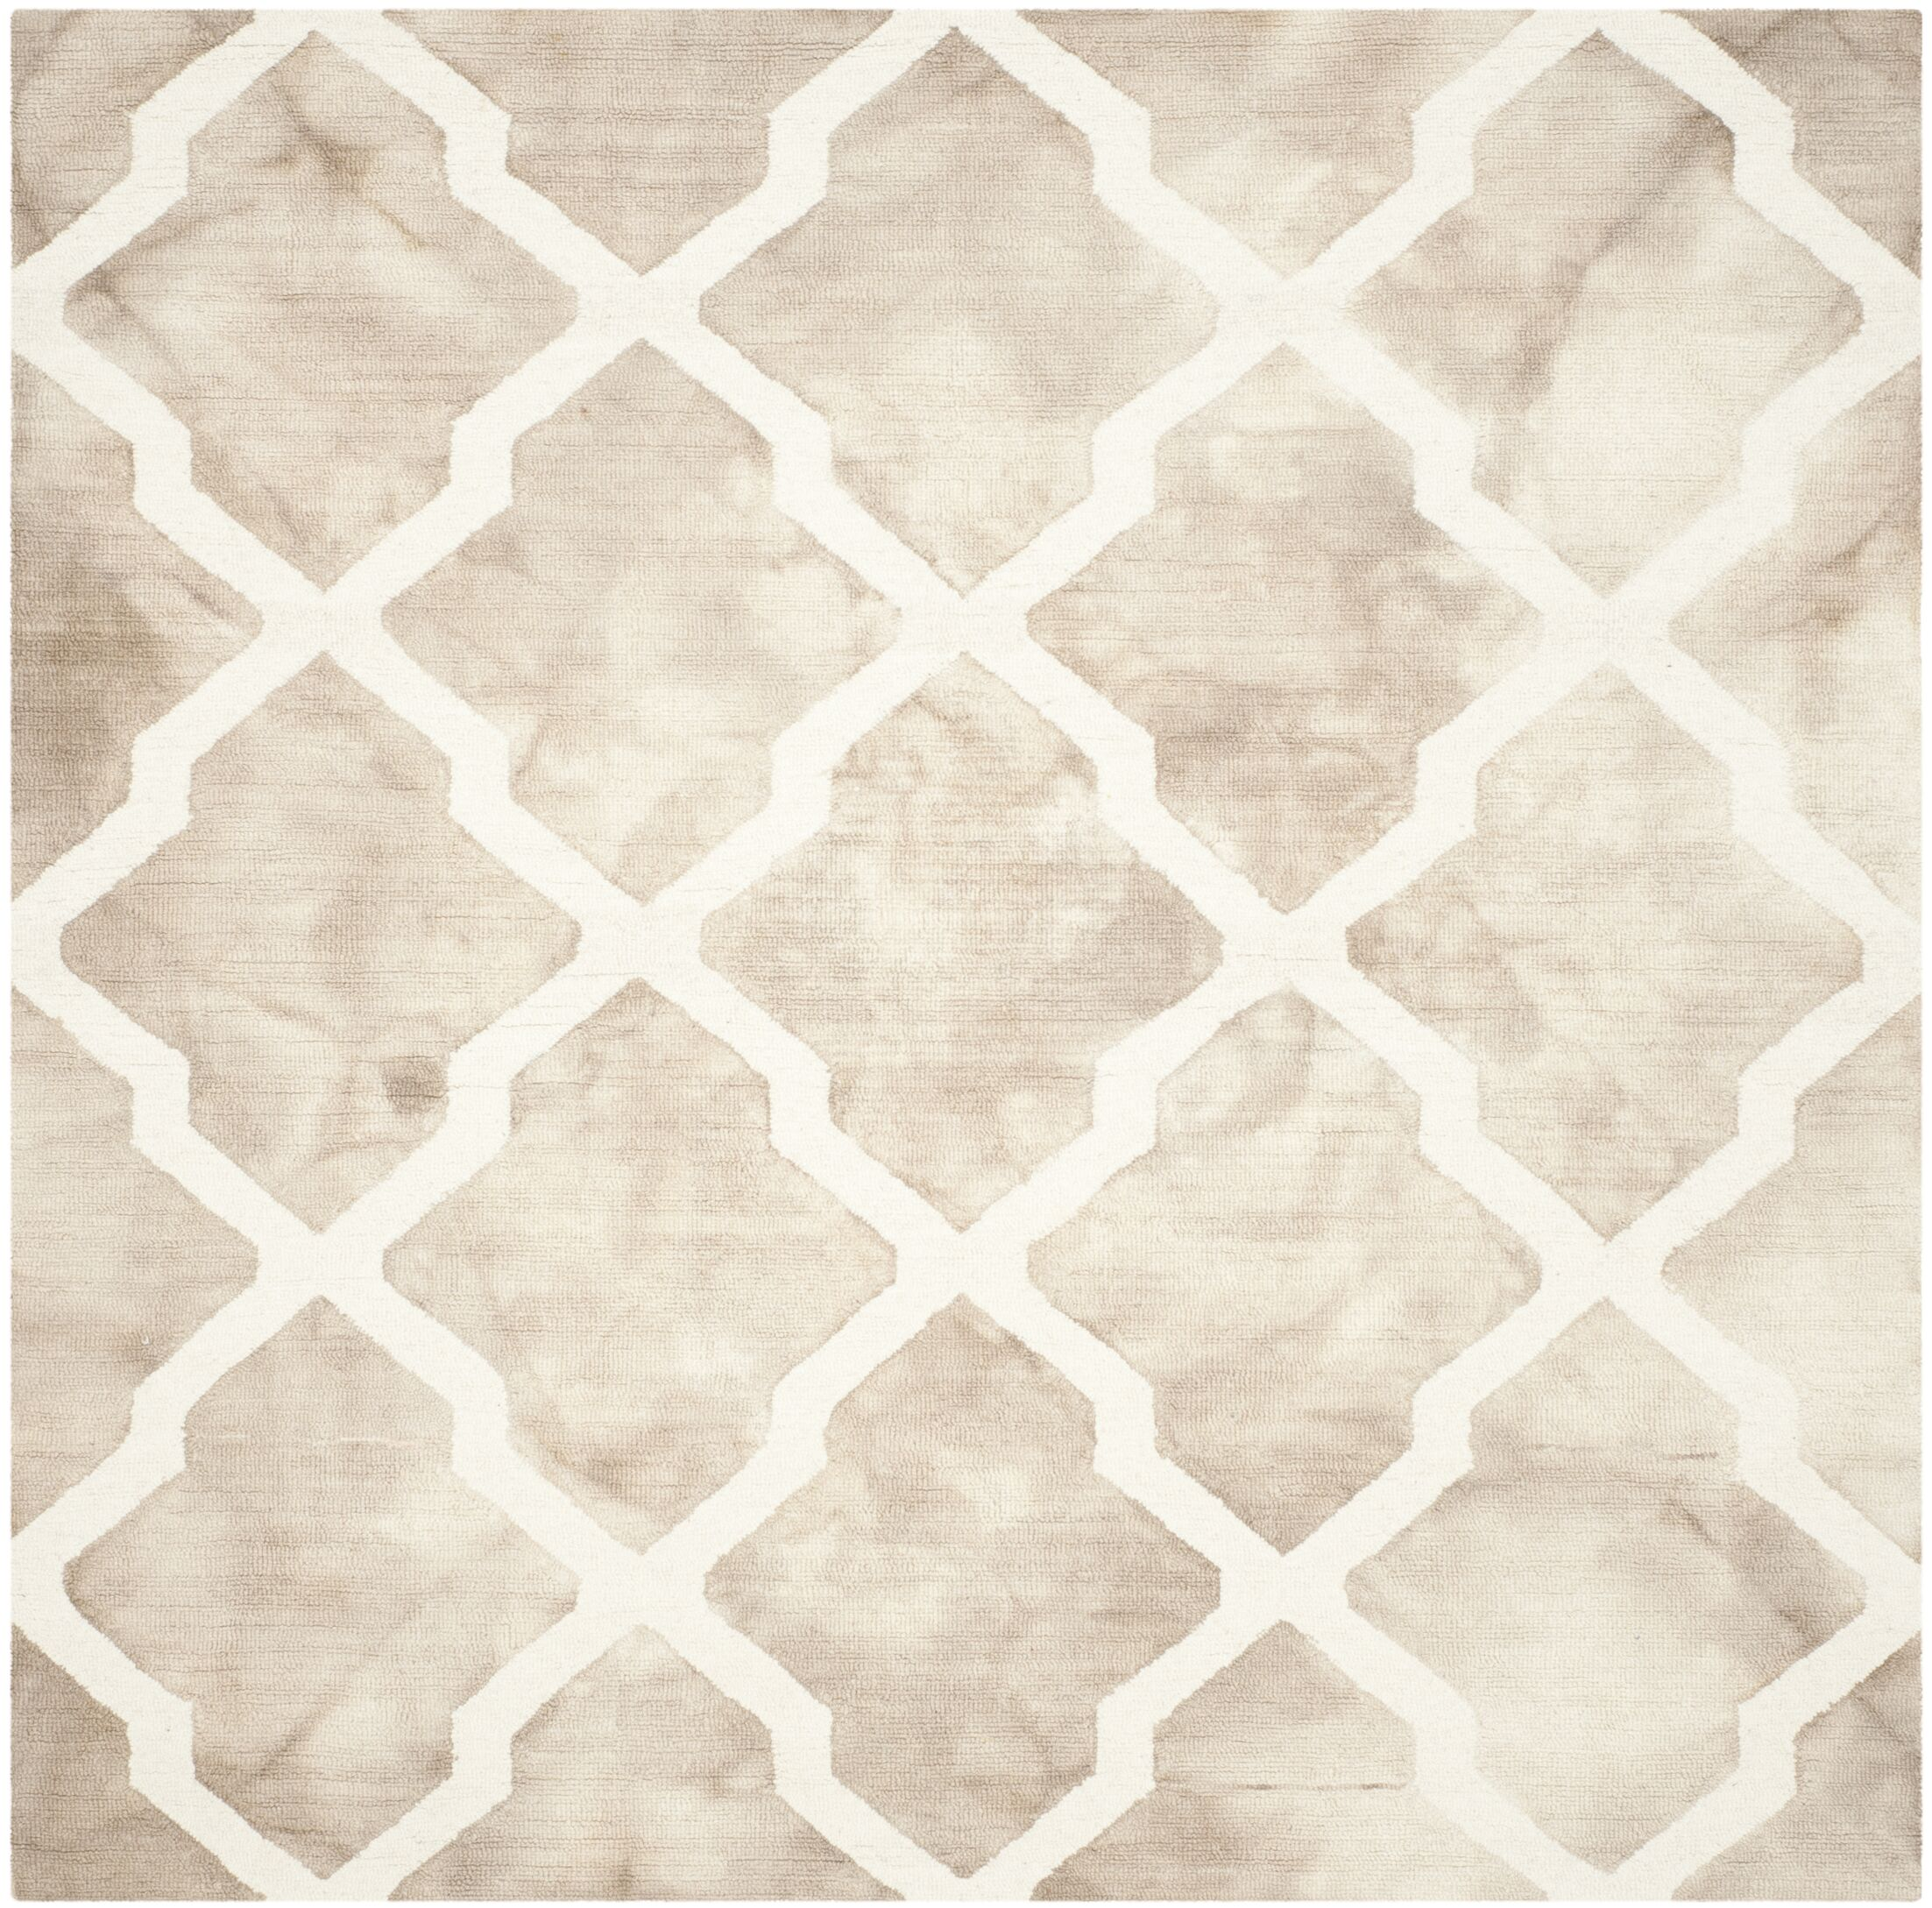 Drury Hand-Tufted Beige/Ivory Area Rug Rug Size: Square 7'